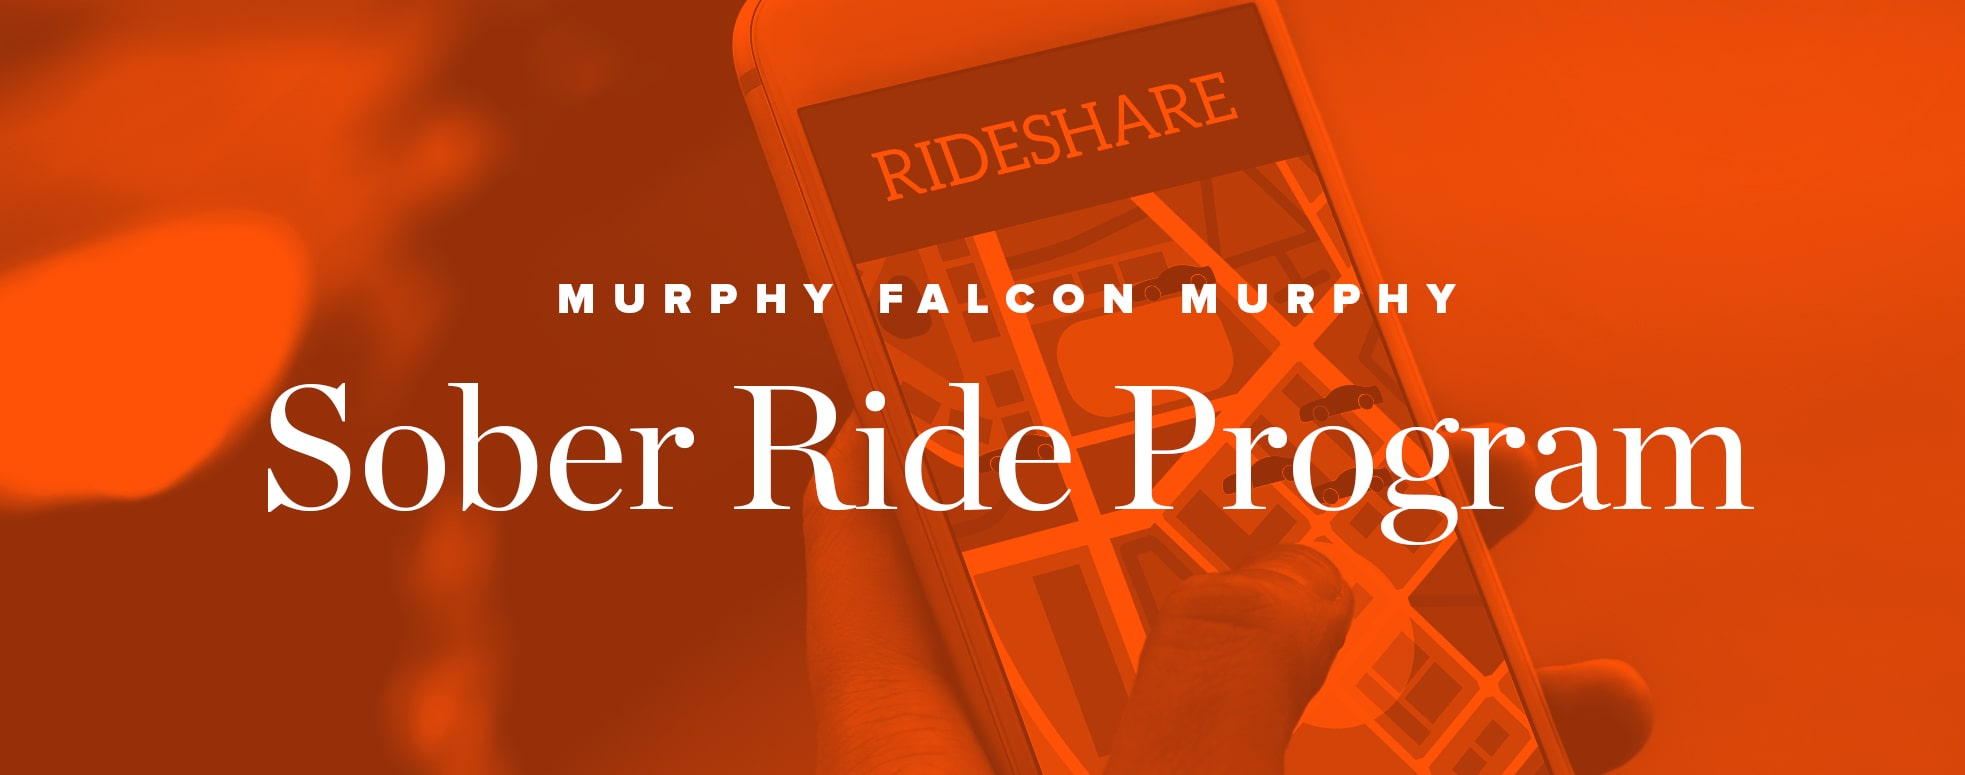 Murphy Falcon Murphy Sober Ride Program